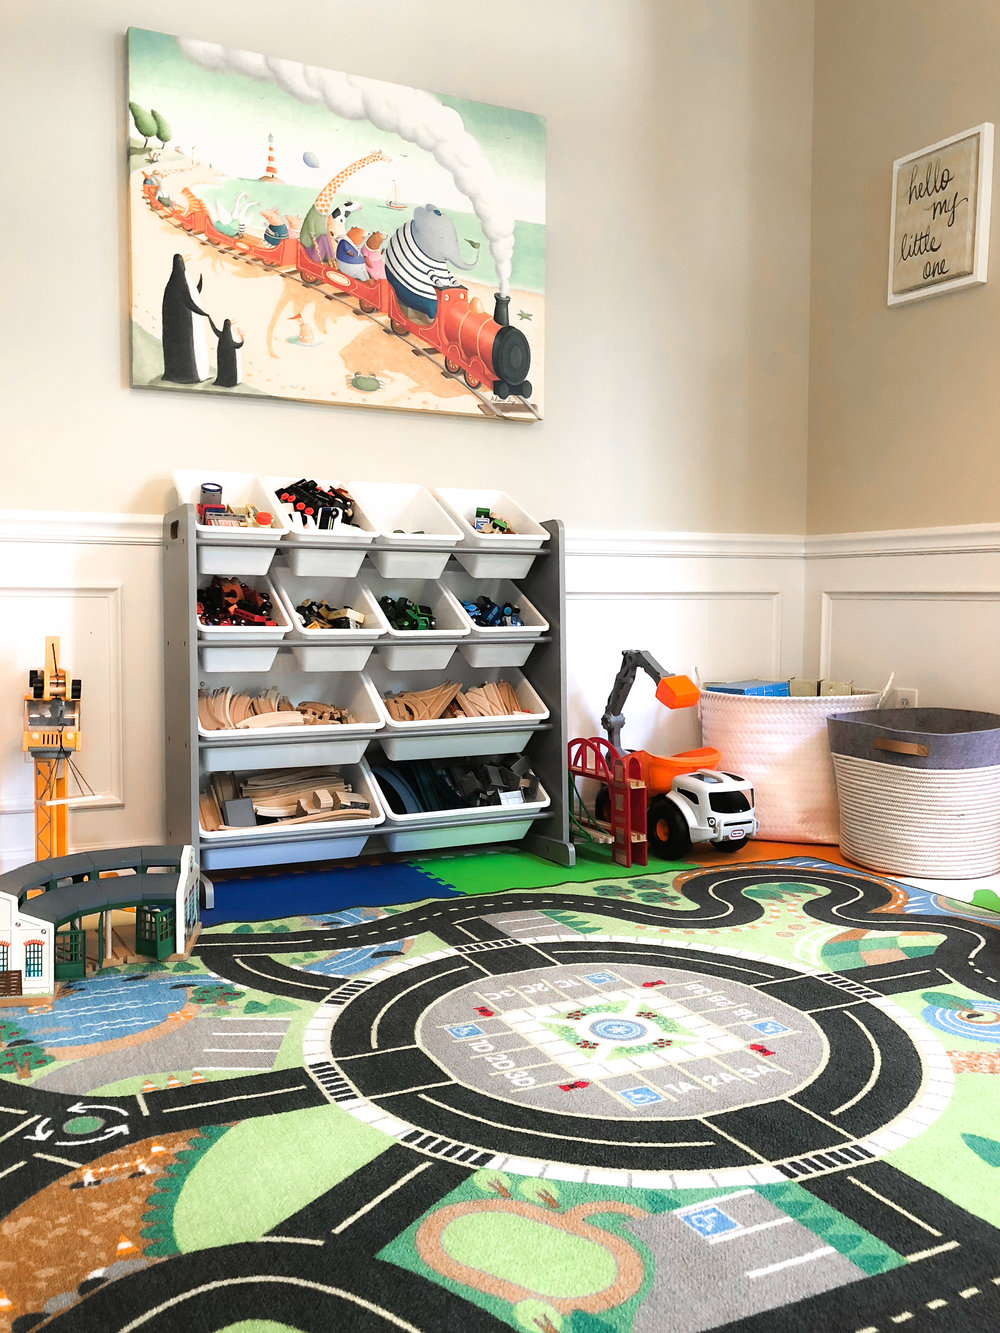 House of Turk | Play space Organization